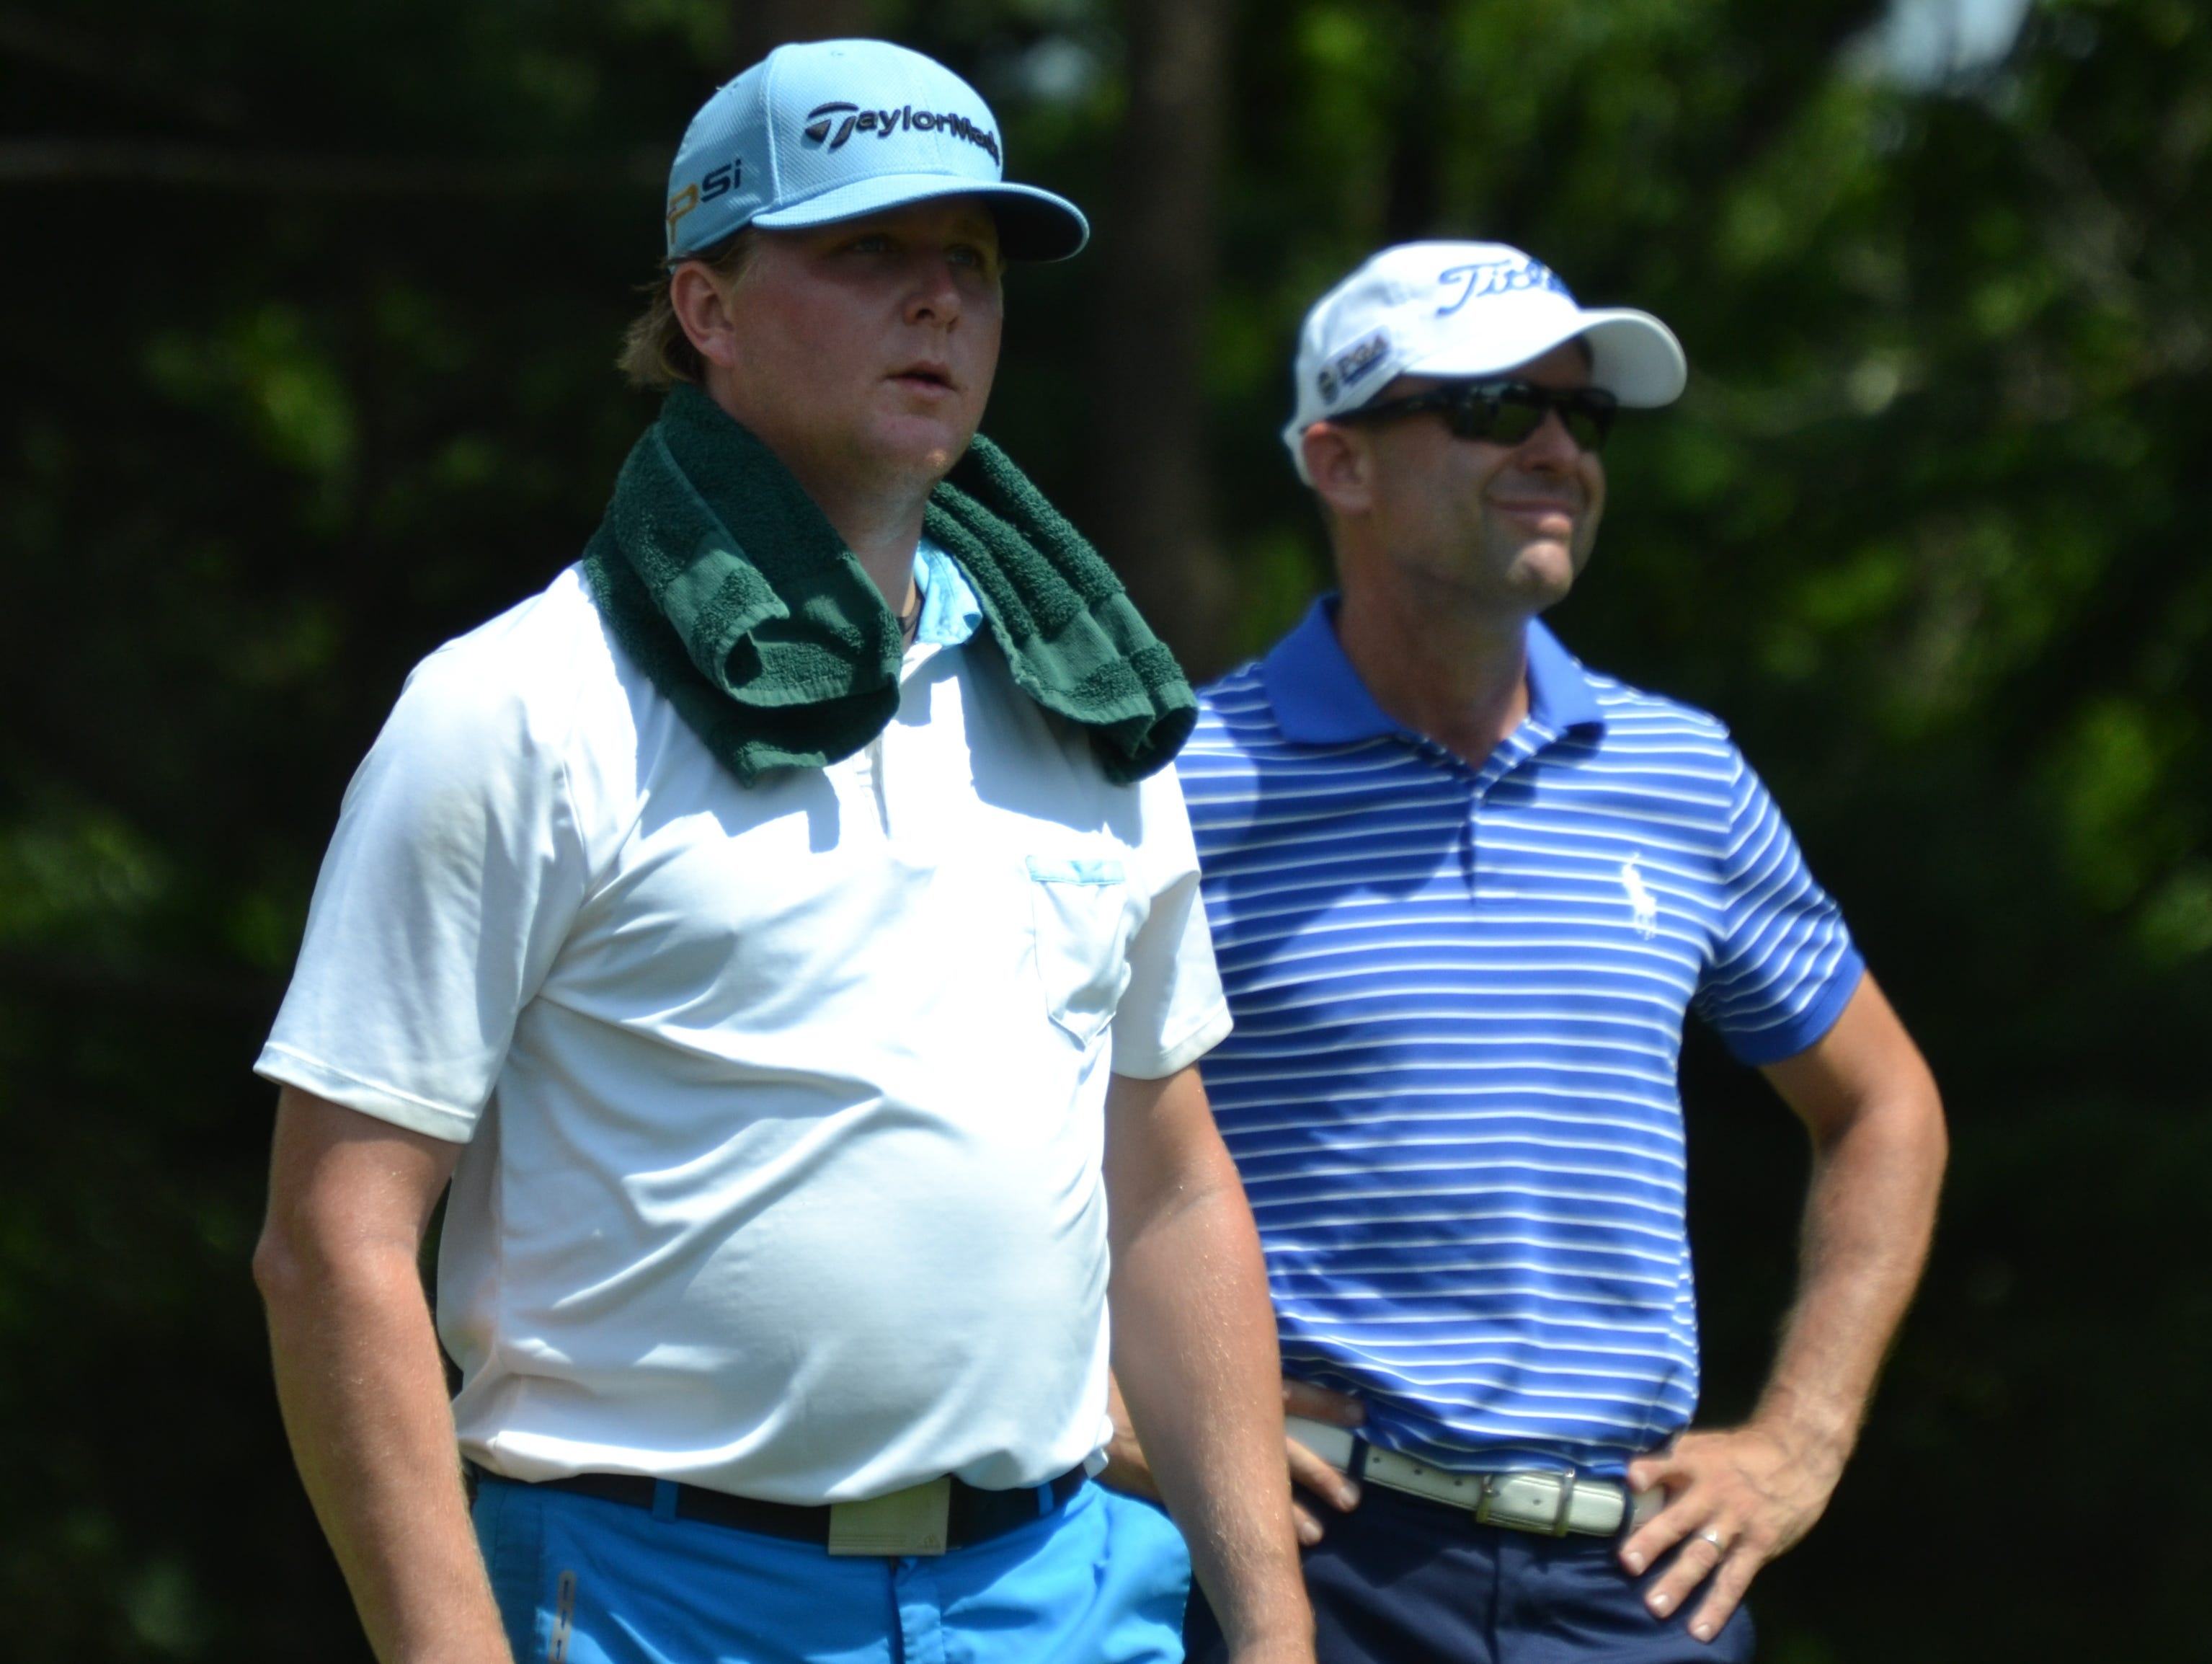 Peter Ballo (left) and Rob Labritz watch the other member of there group, Dennis Hillman tee off during the final round of the Westchester Open Wednesday at GlenArbor Golf Club.